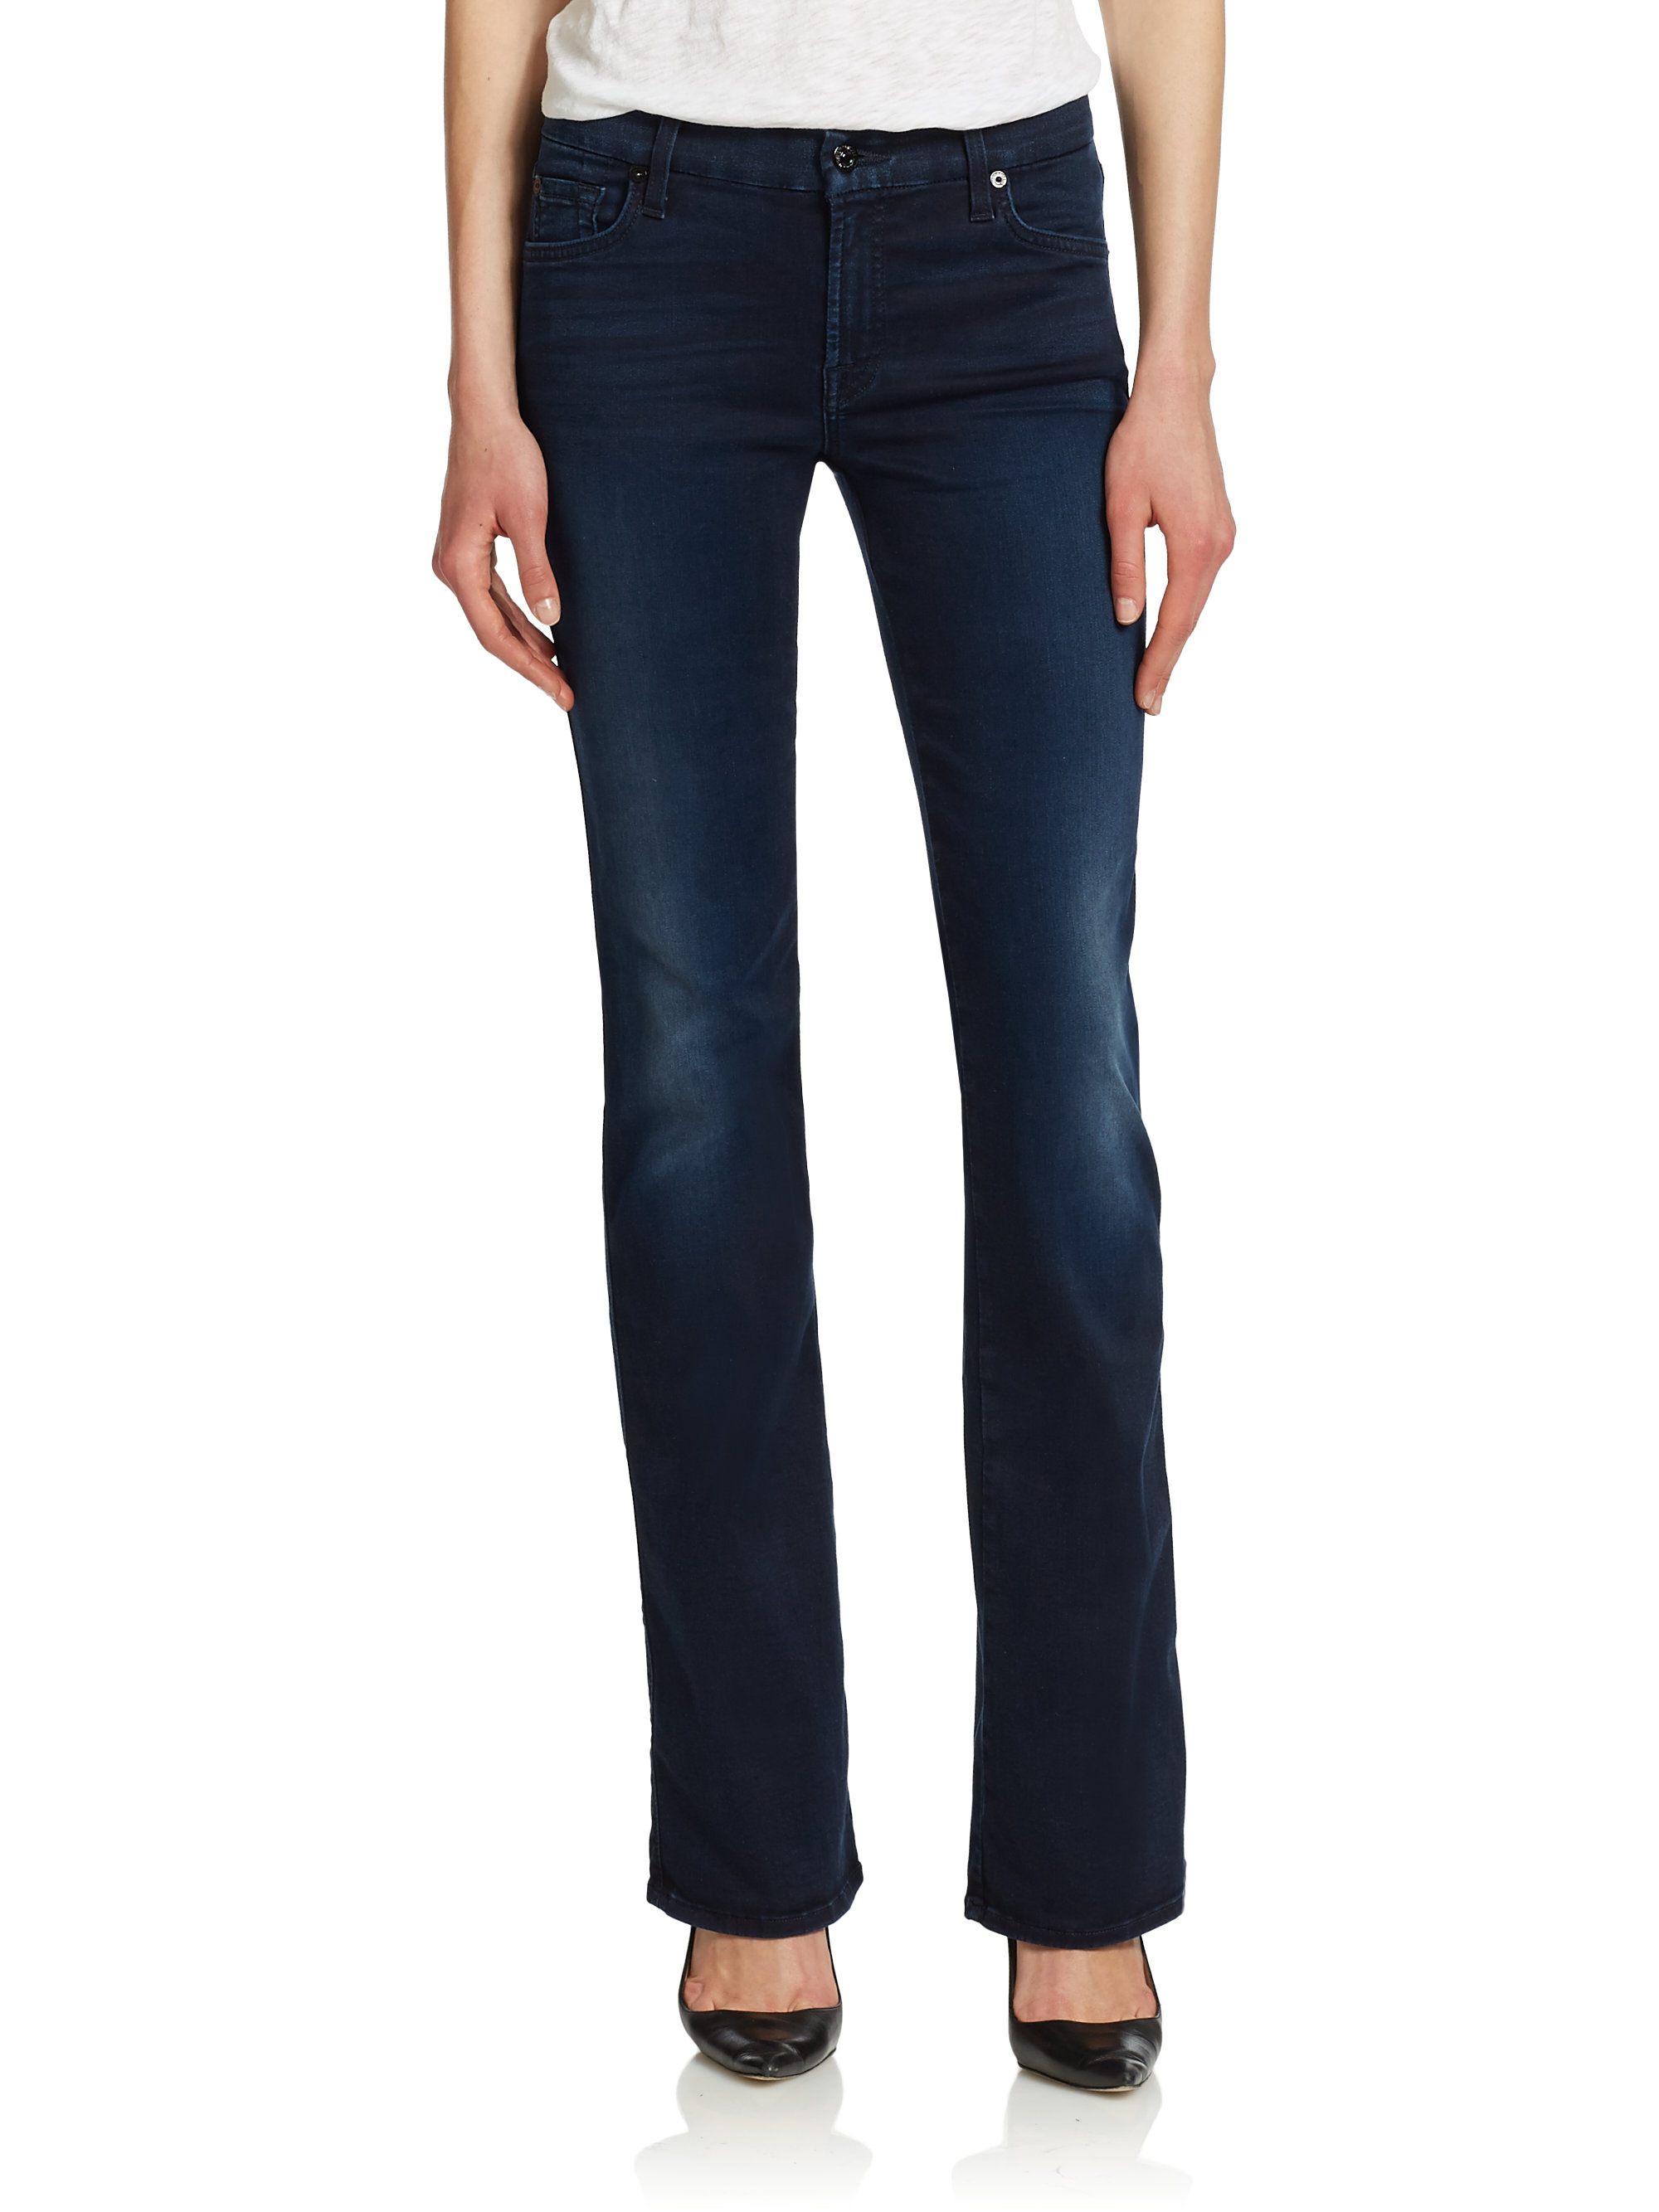 7 for All Mankind. Premium denim, known for its fits, fabrics and finishes,